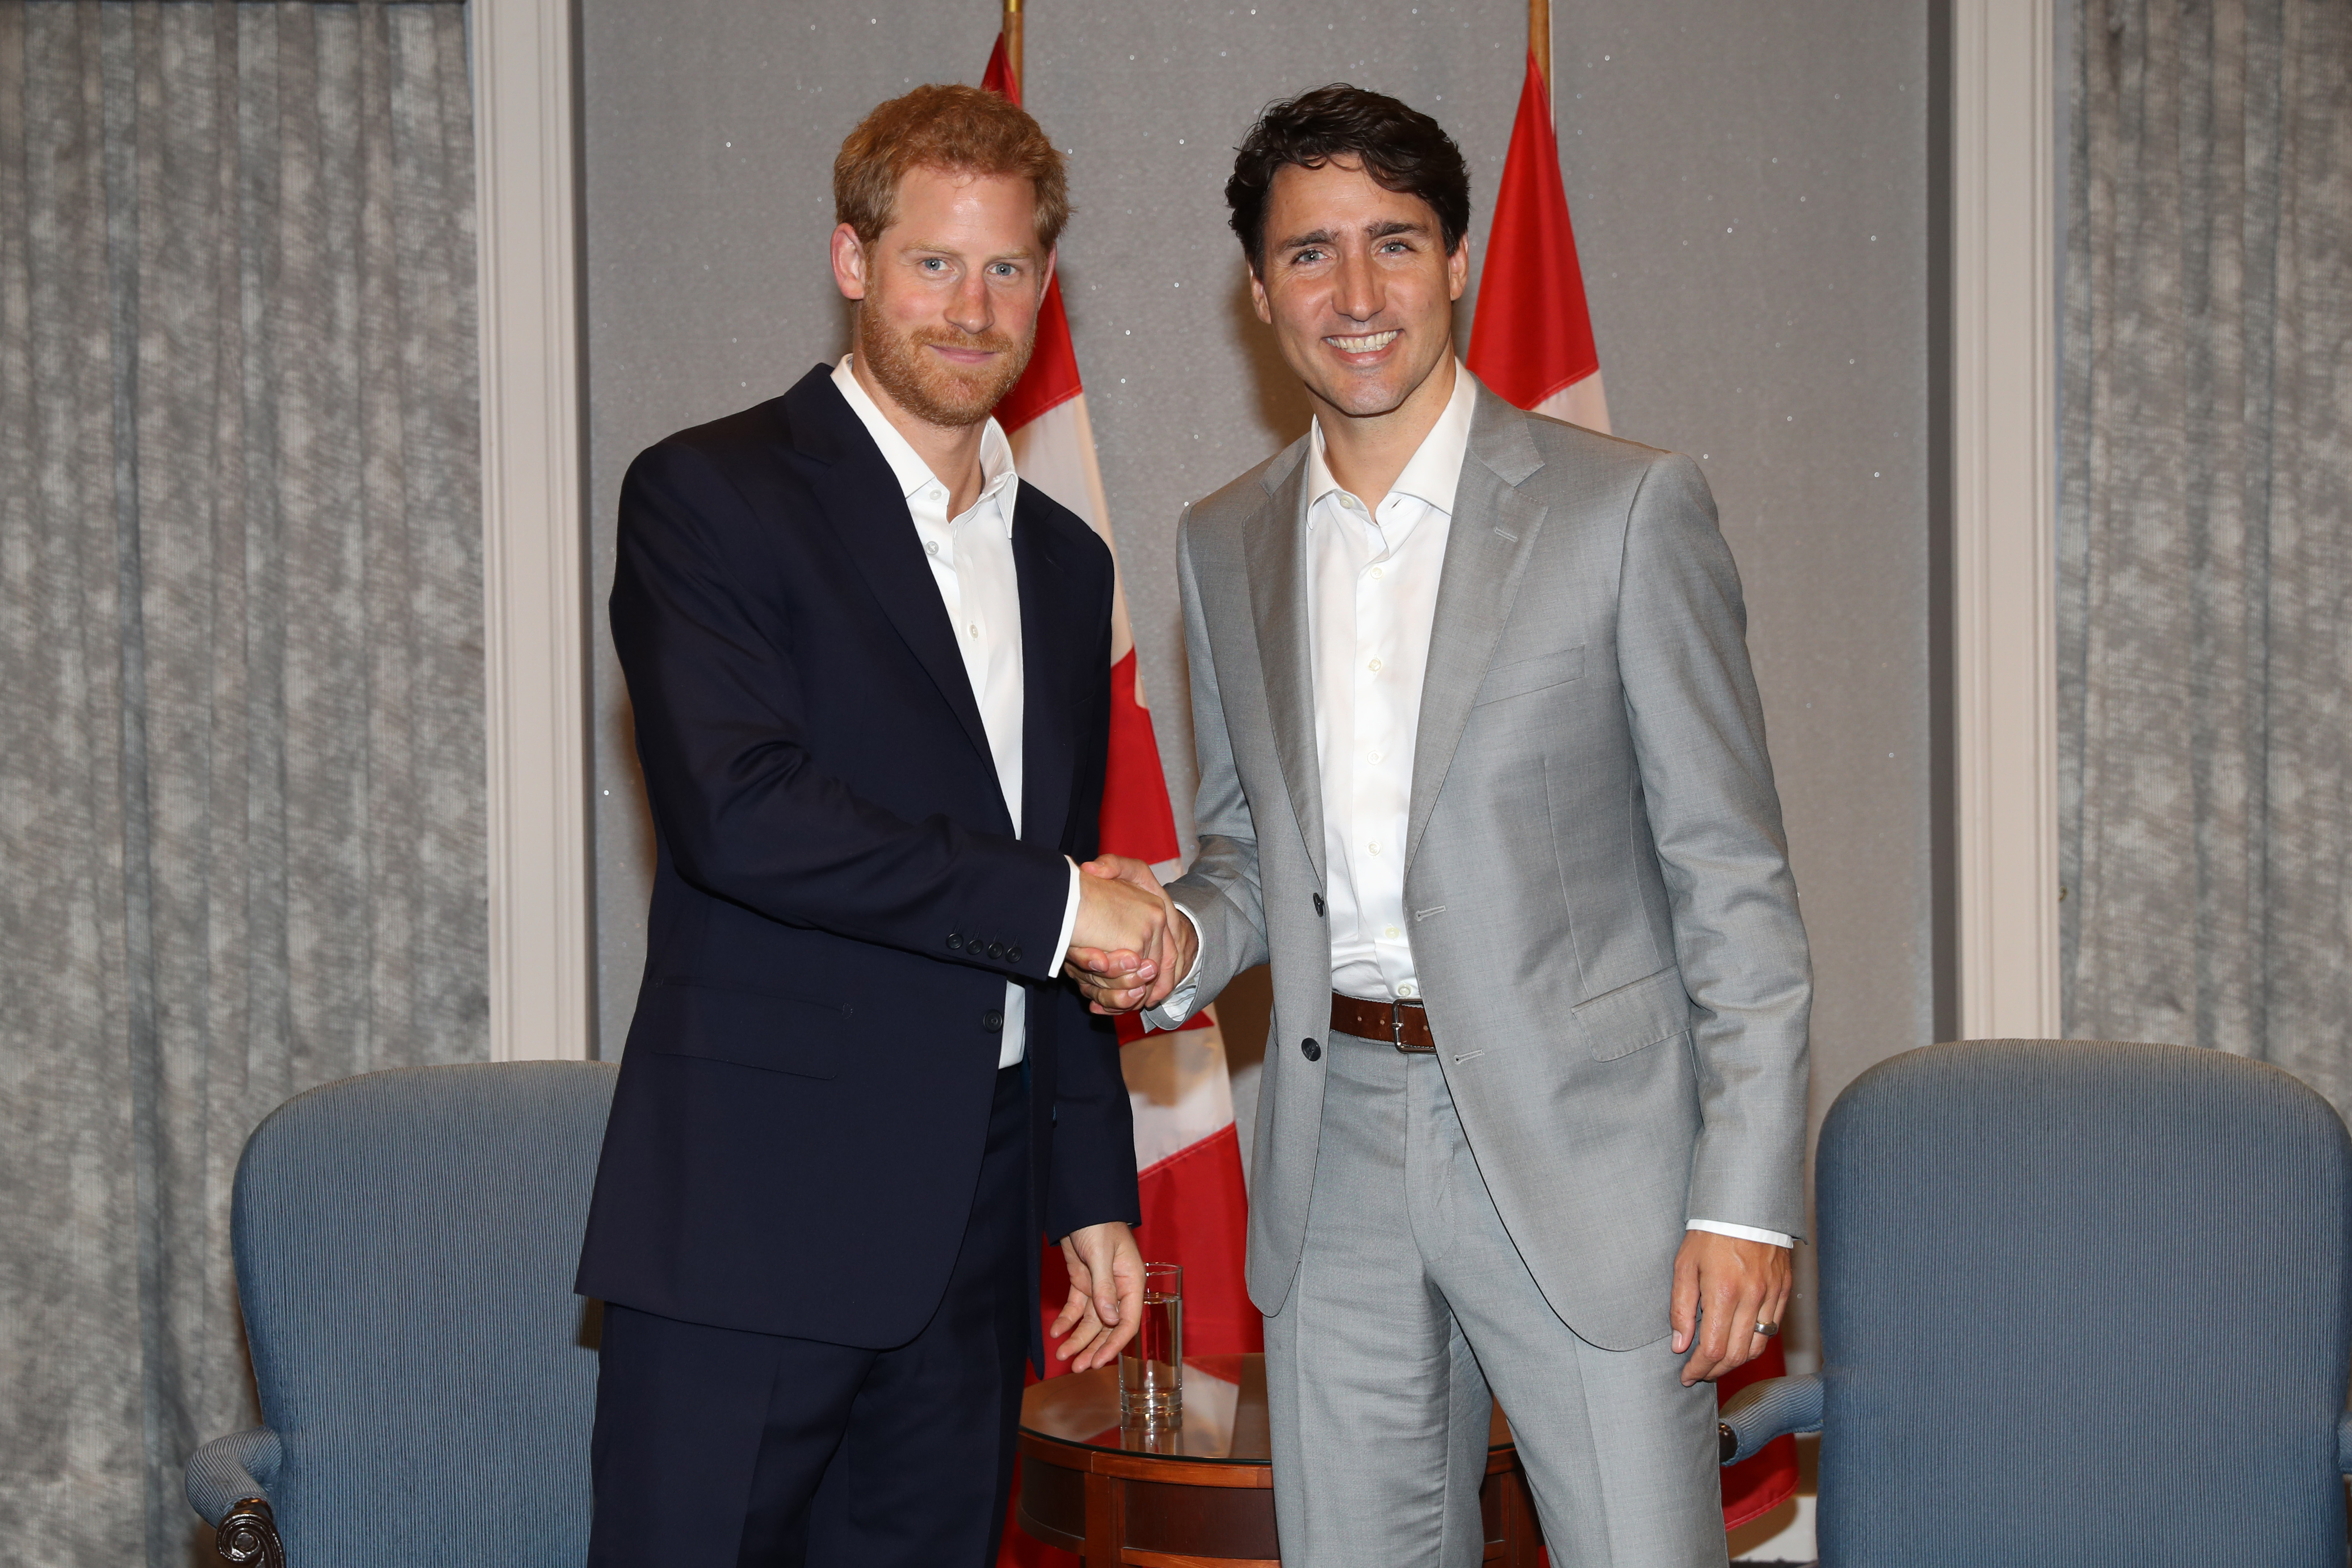 Prince Harry and Trudeau